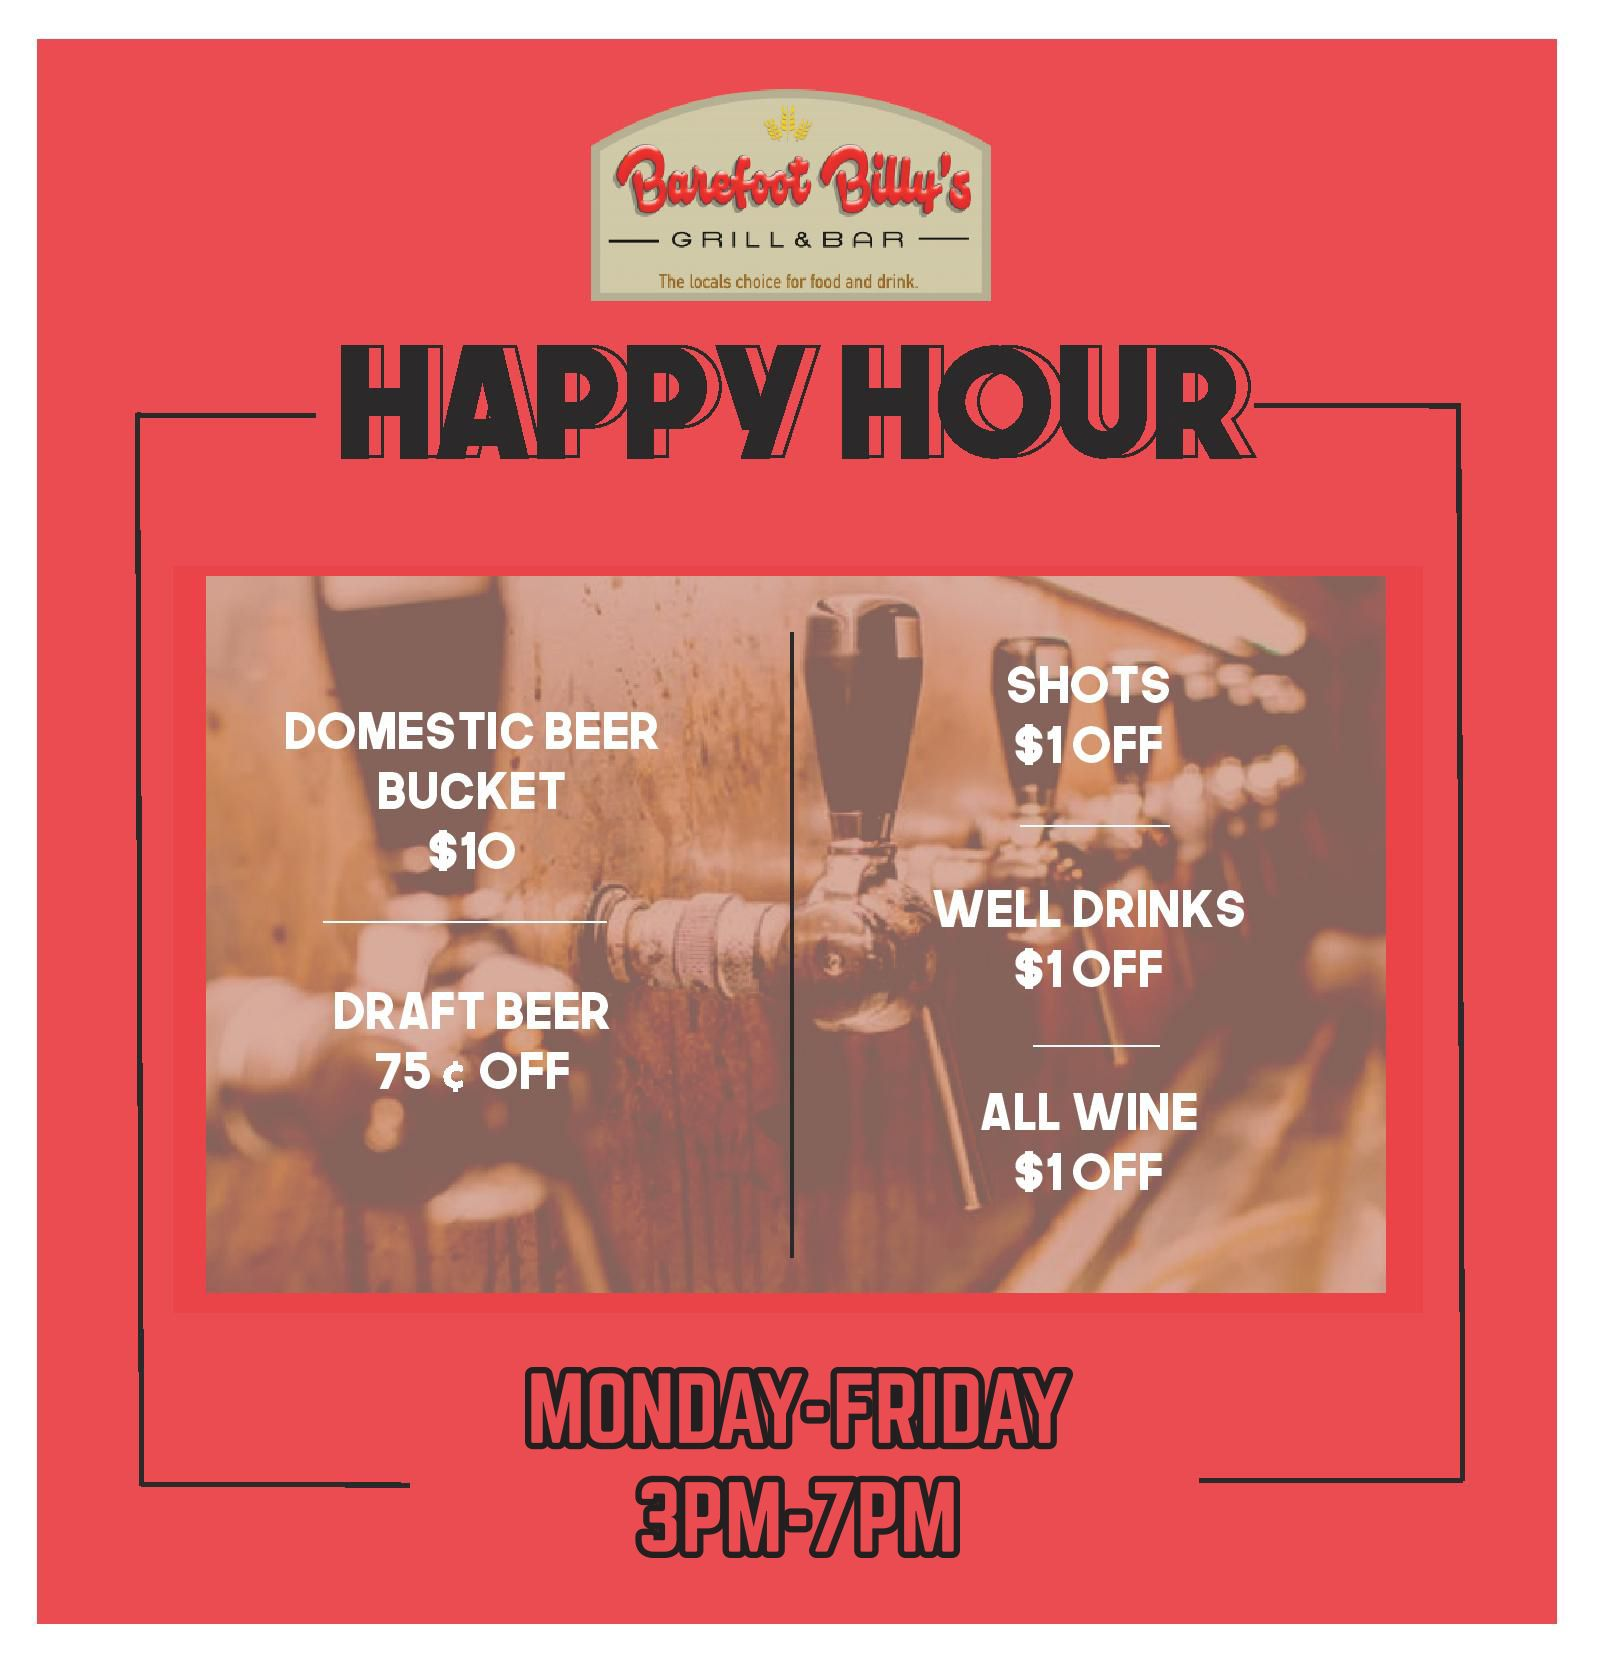 Get Your Drink On At Barefoot Billy S Happy Hour Specials Monday Friday From 3pm 7pm In 2020 Happy Hour Specials Happy Hour Drinks